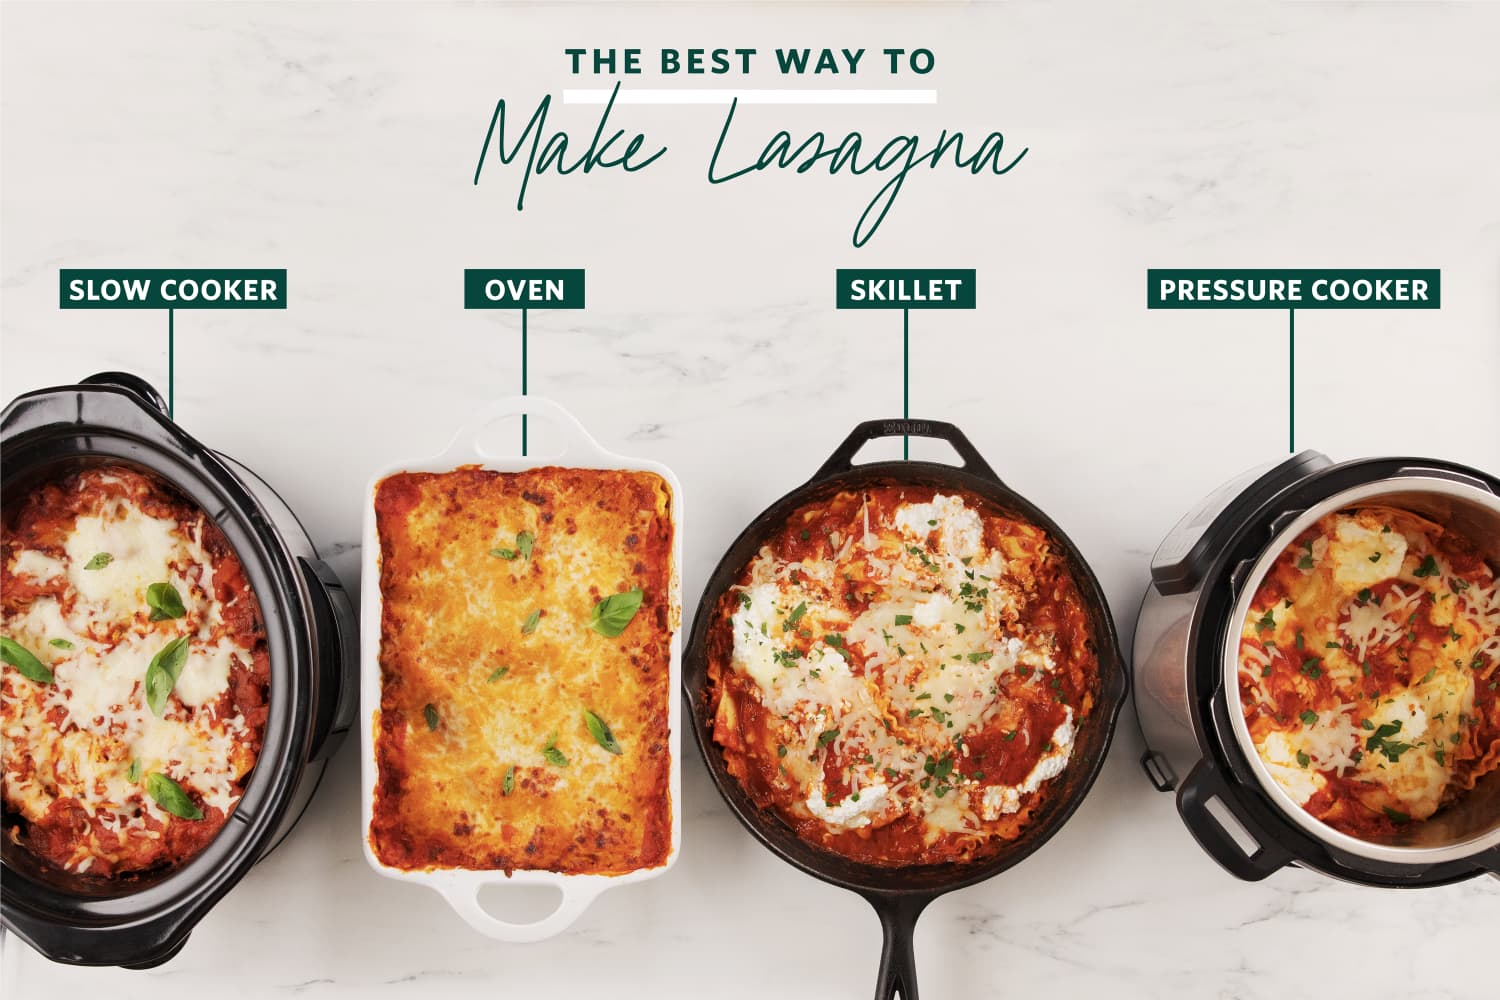 We Tried 4 Different Ways to Make Lasagna and Found a Definite Winner